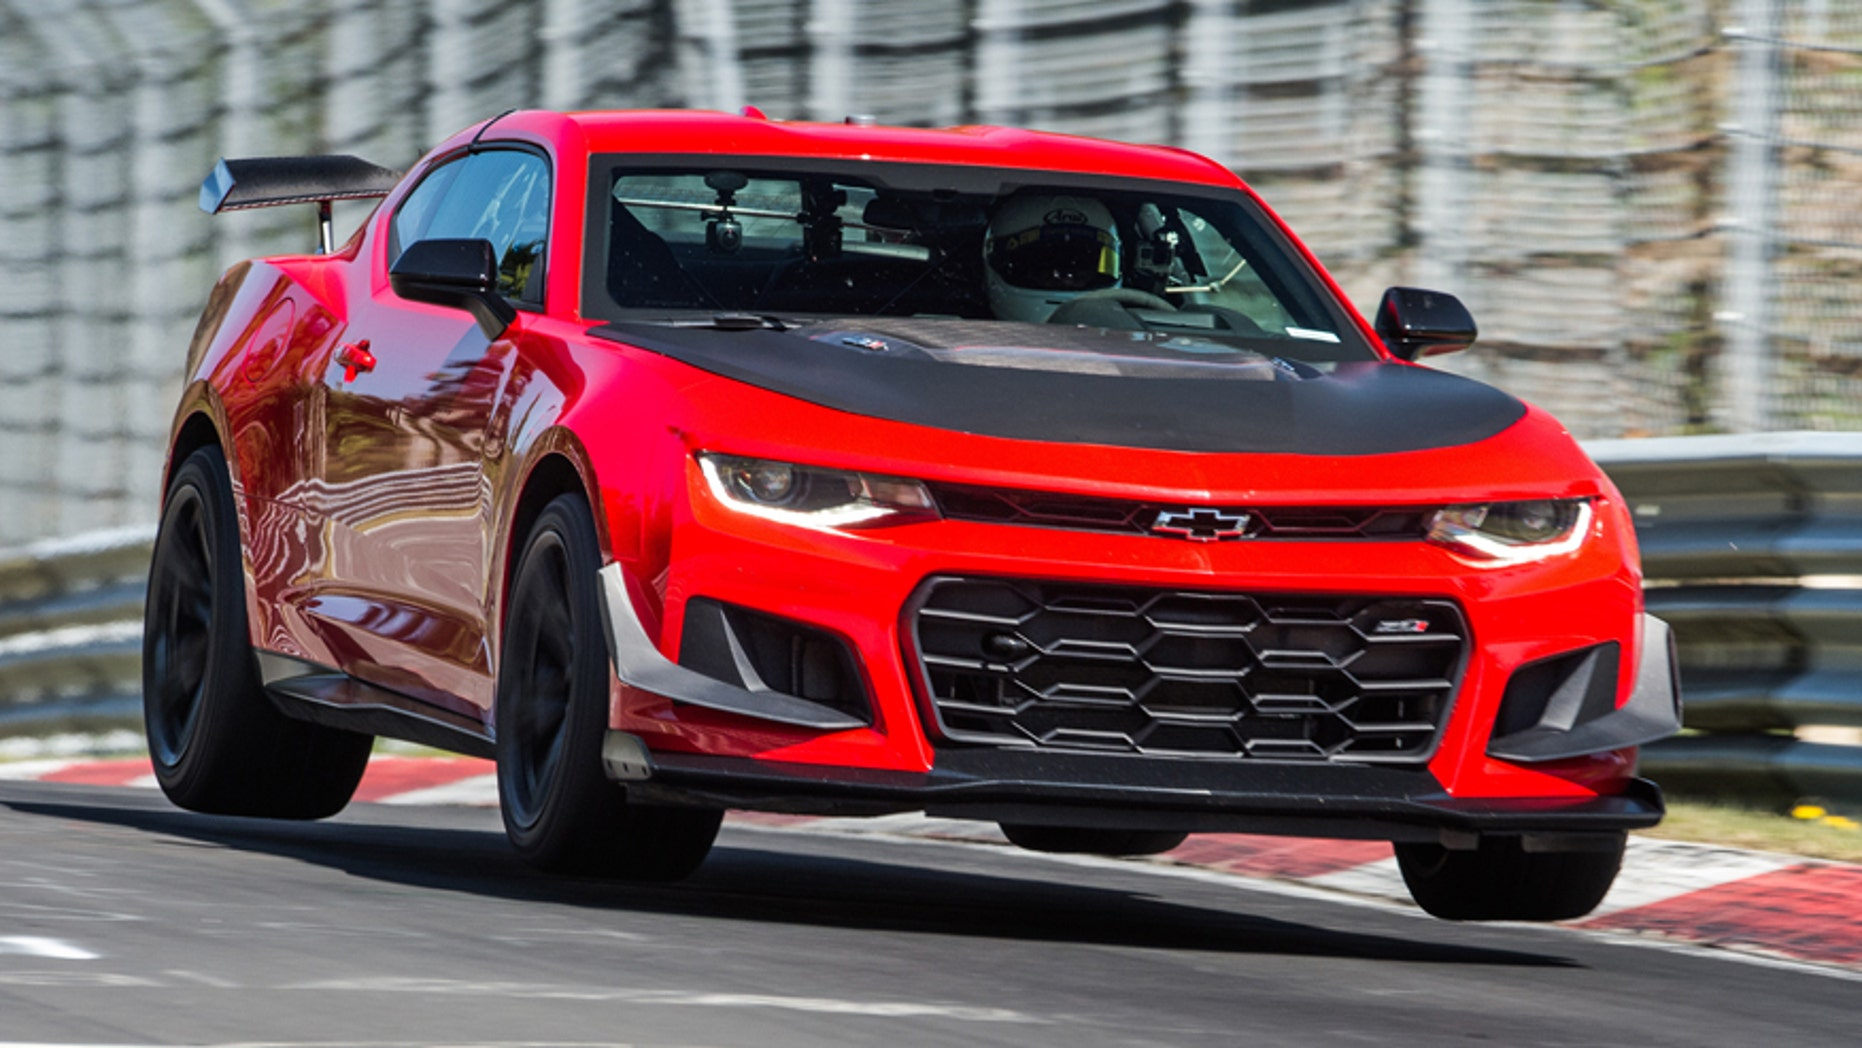 2018 Chevrolet Camaro ZL1 1LE is faster than Corvette ...